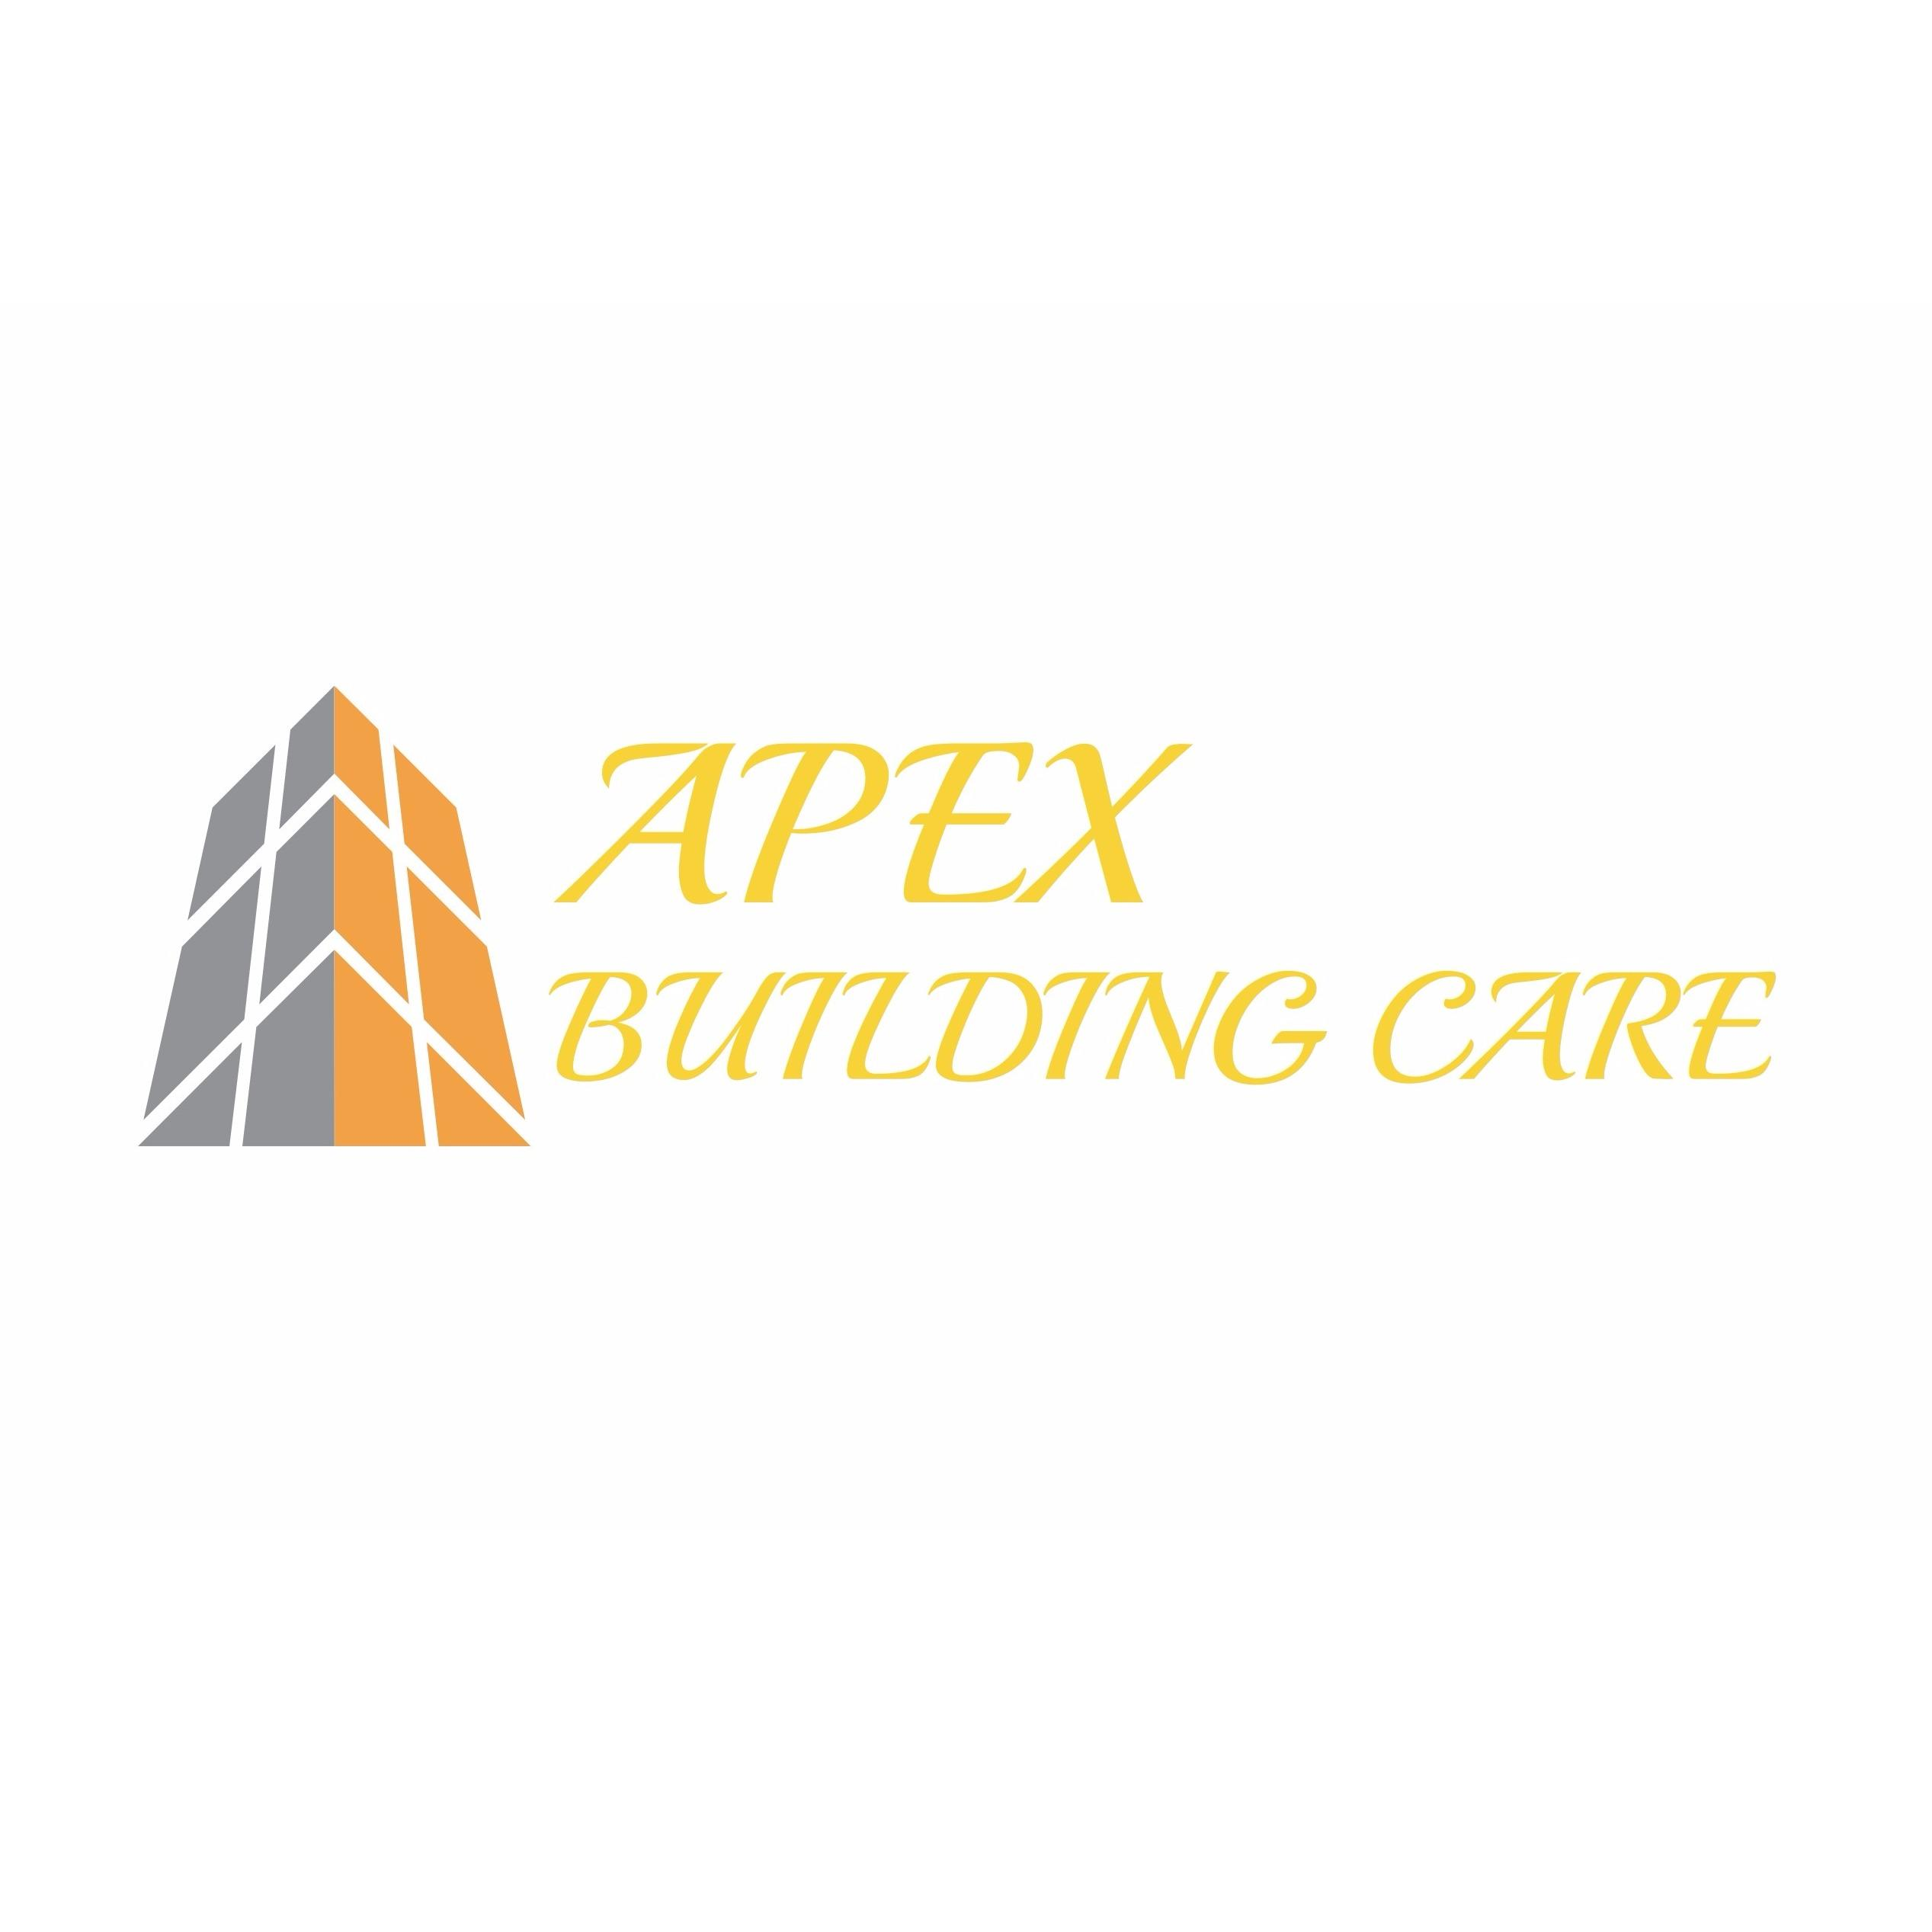 image of the Apex Building Care